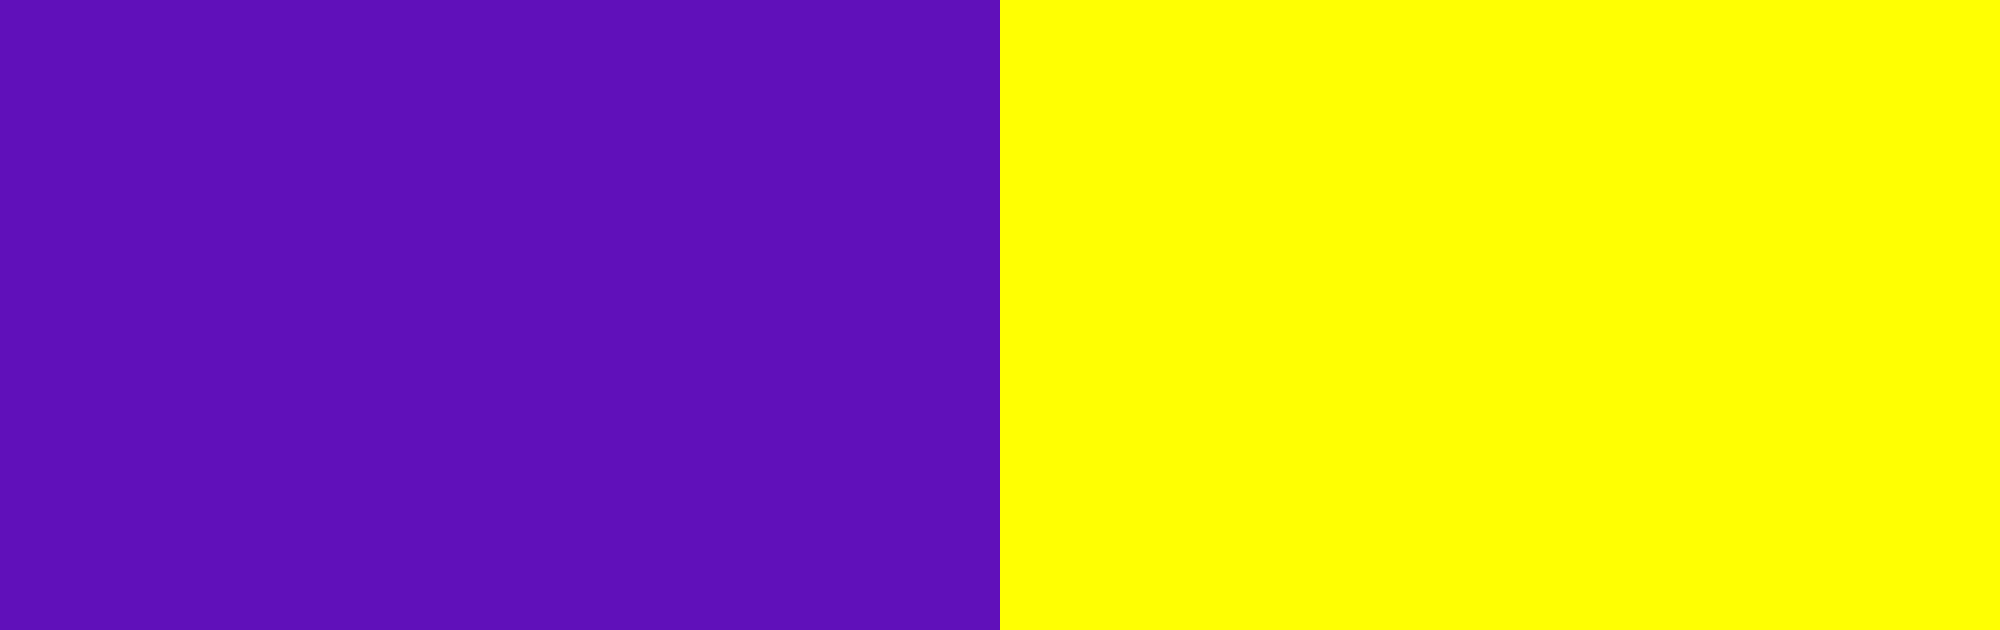 Demonstrating complementary colors with purple and yellow.